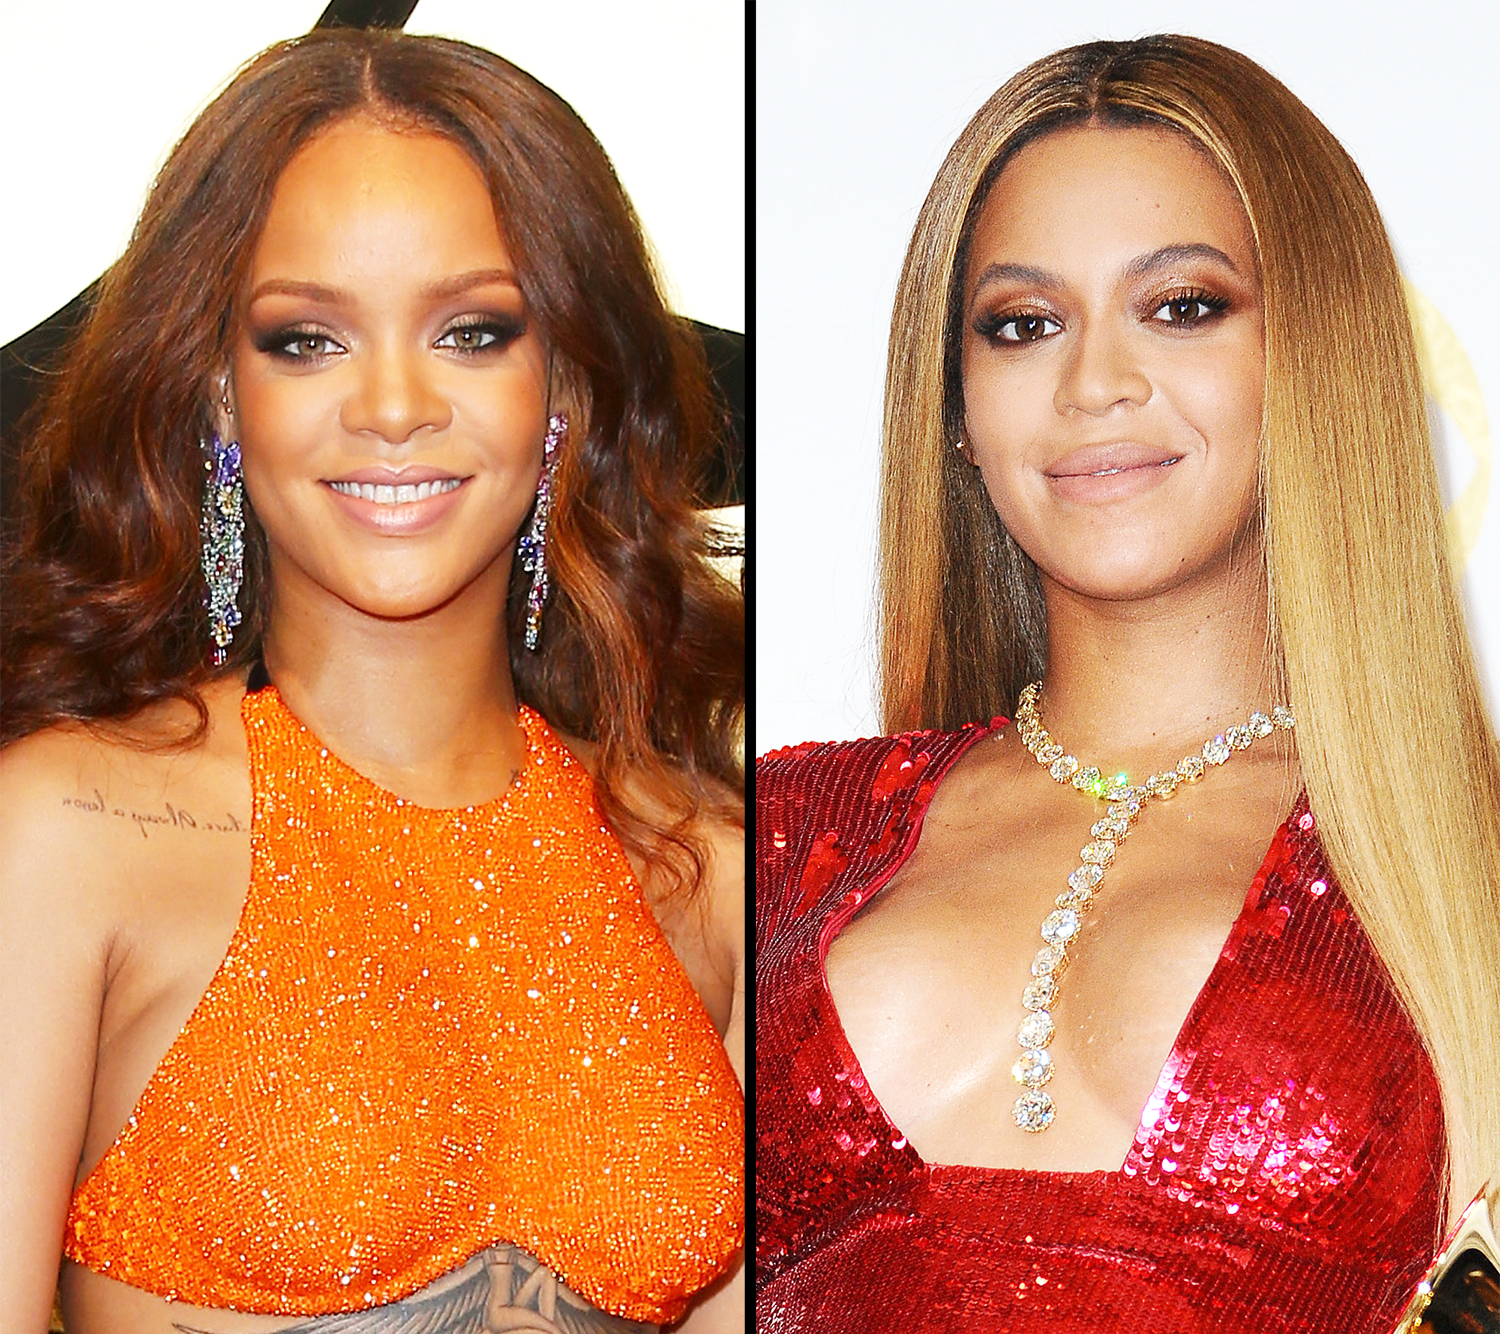 Beyonce and Rihanna Blow Kisses at Each Other: Watch